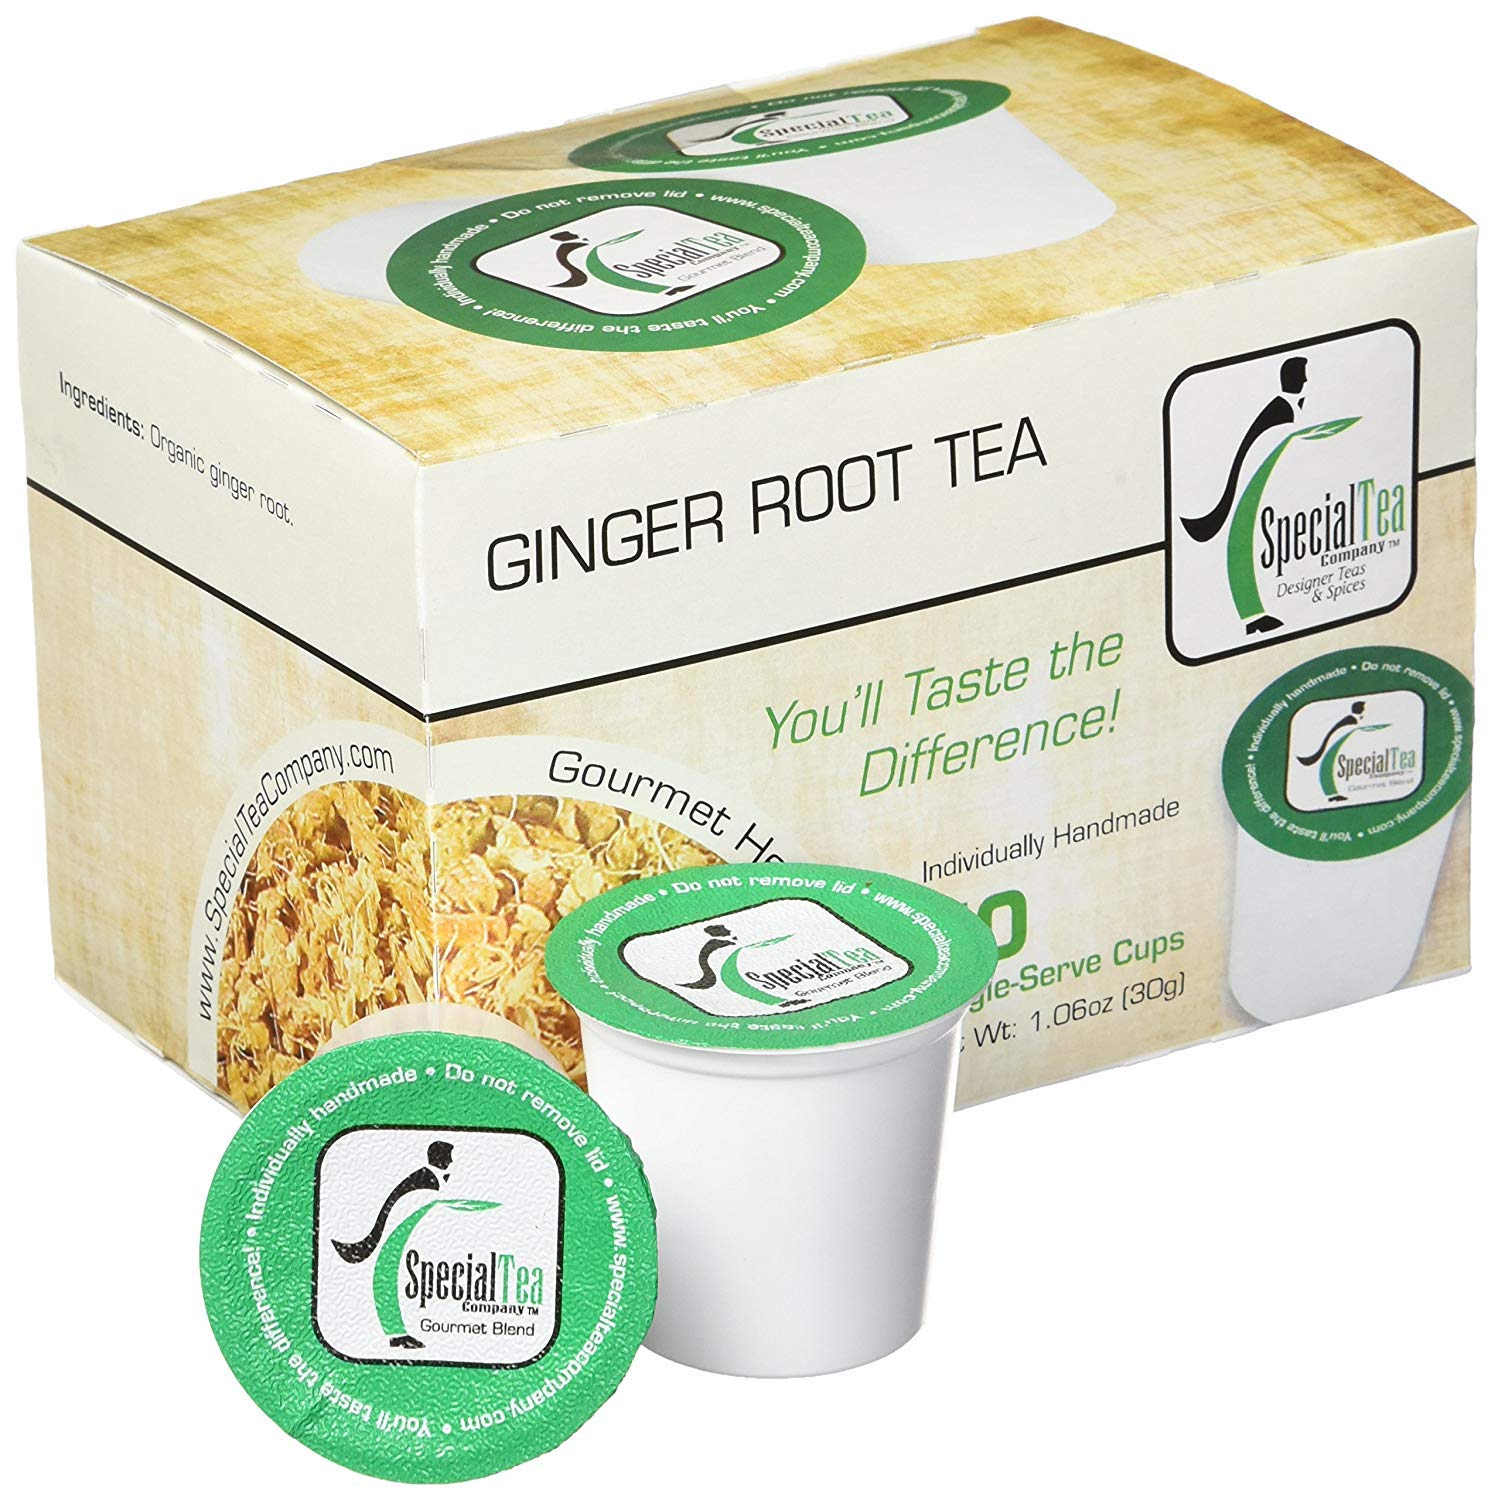 Special Tea Company Ginger Root, Single Serve Herbal Tea Pod (Pack of 10)